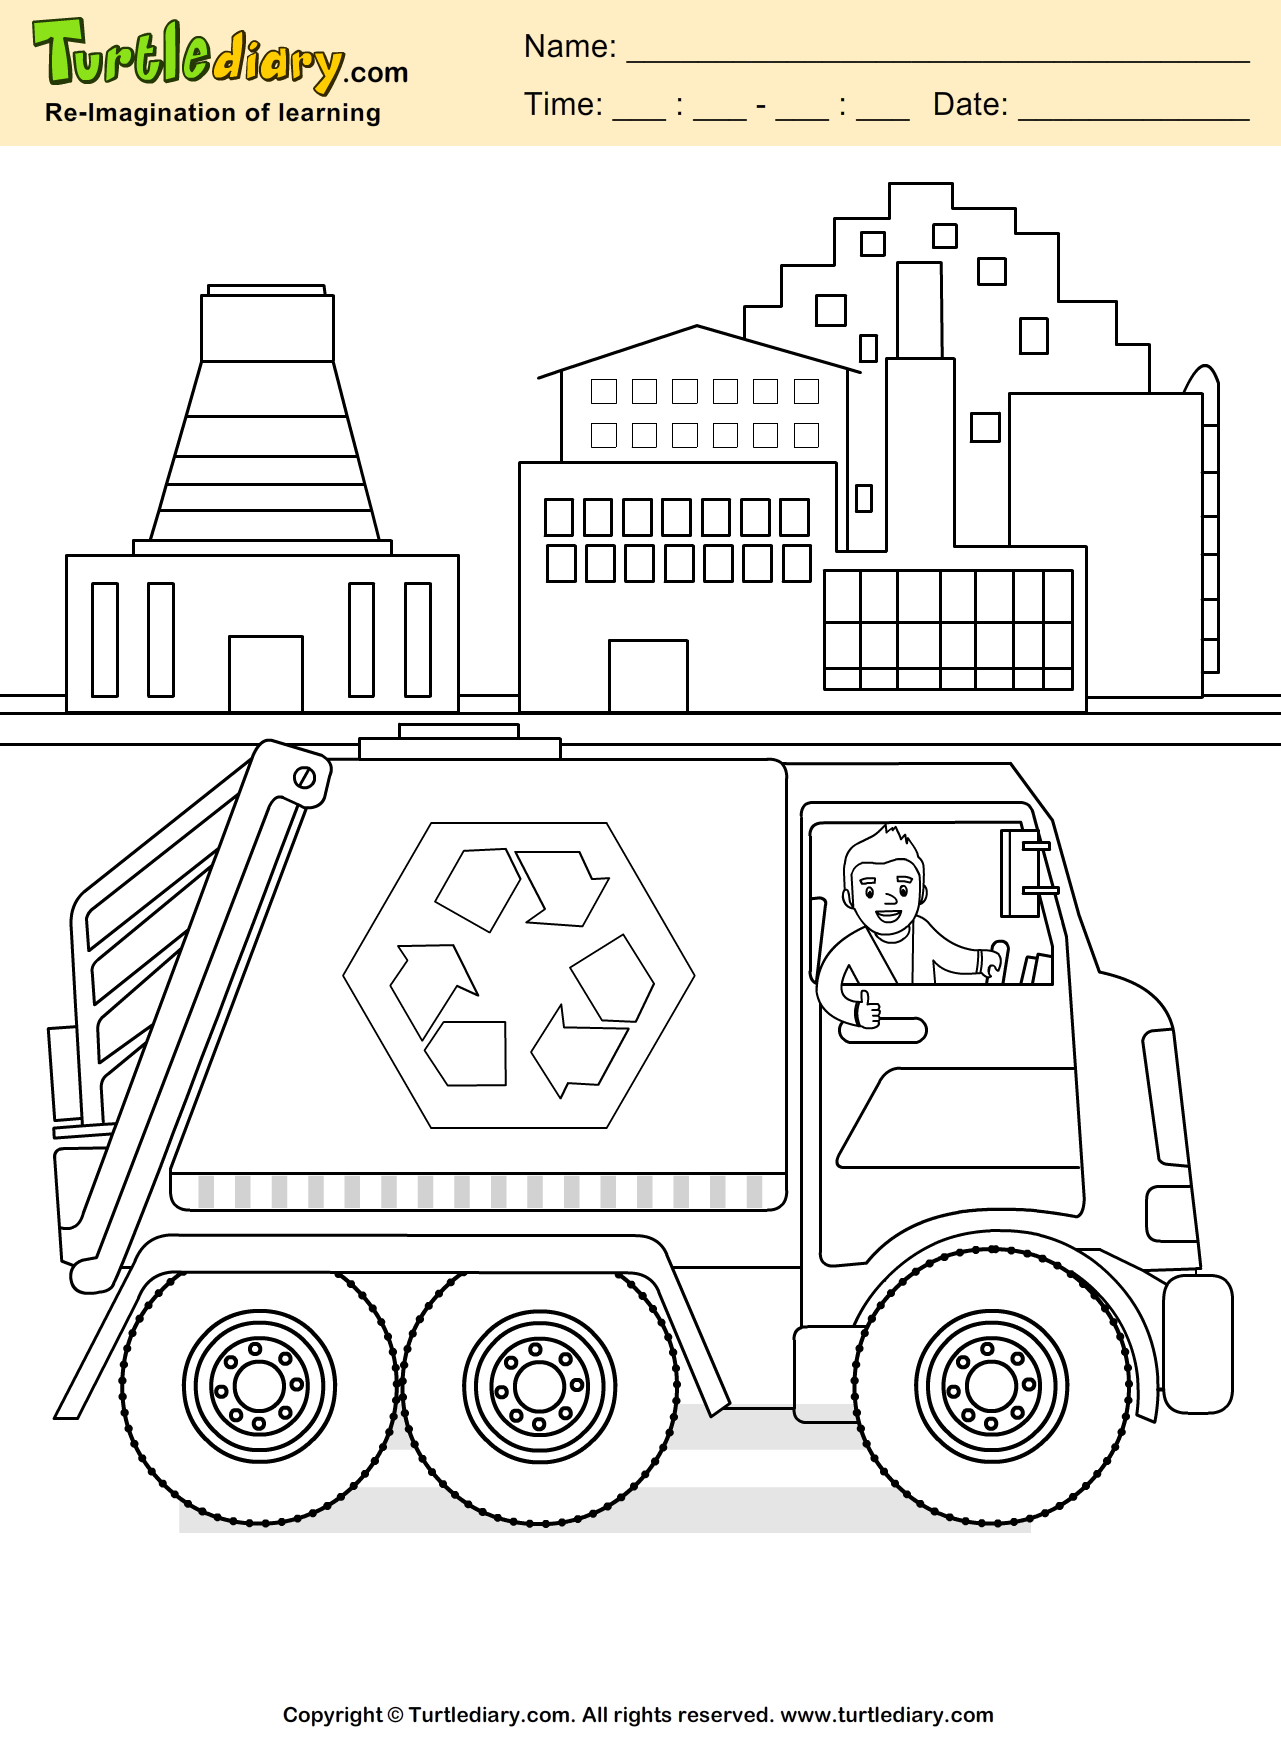 Recycling Coloring Sheet Turtle